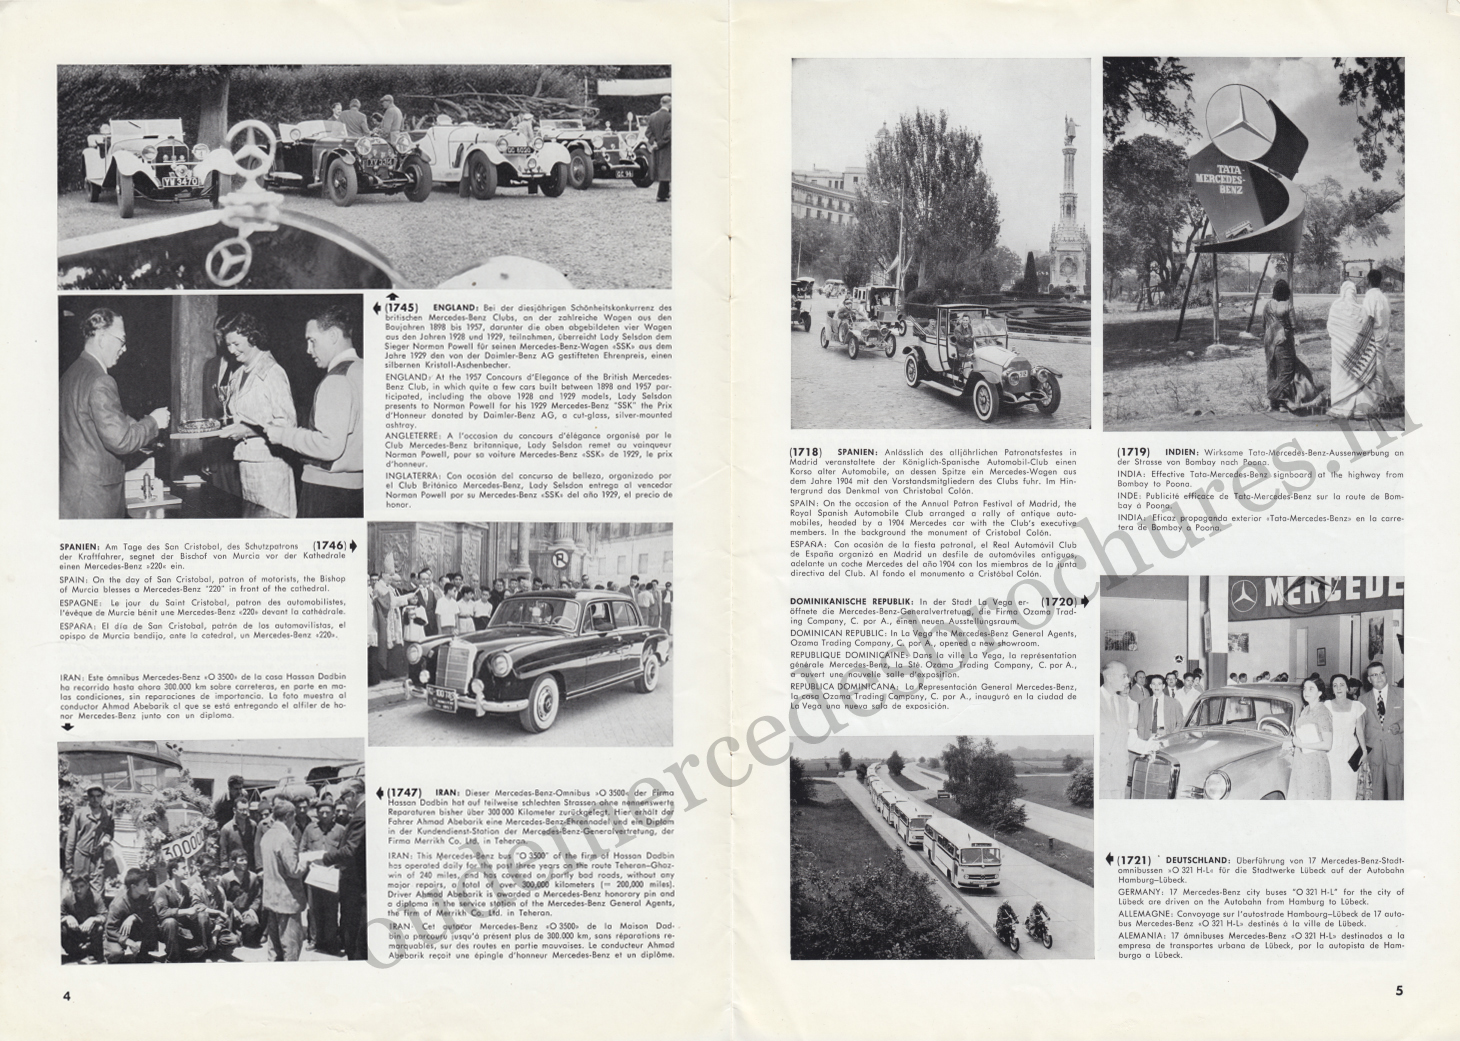 (REVISTA): Periódico In aller welt n.º 13 - Mercedes-Benz no mundo - 1957 - multilingue 003